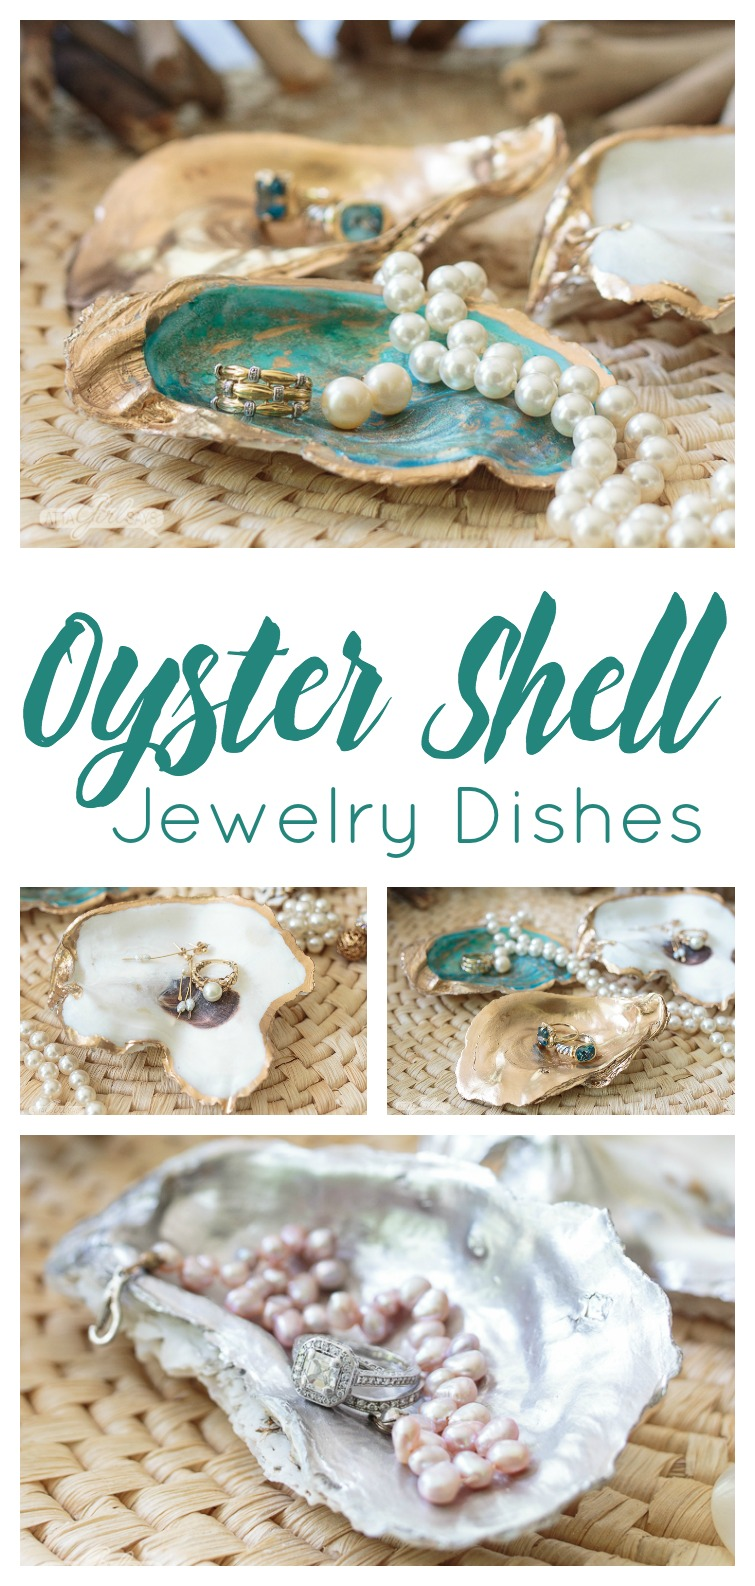 collage photo showing oyster shells turned into DIY jewelry dishes with pearl bracelets, necklaces, earrings and rings resting in the dishes